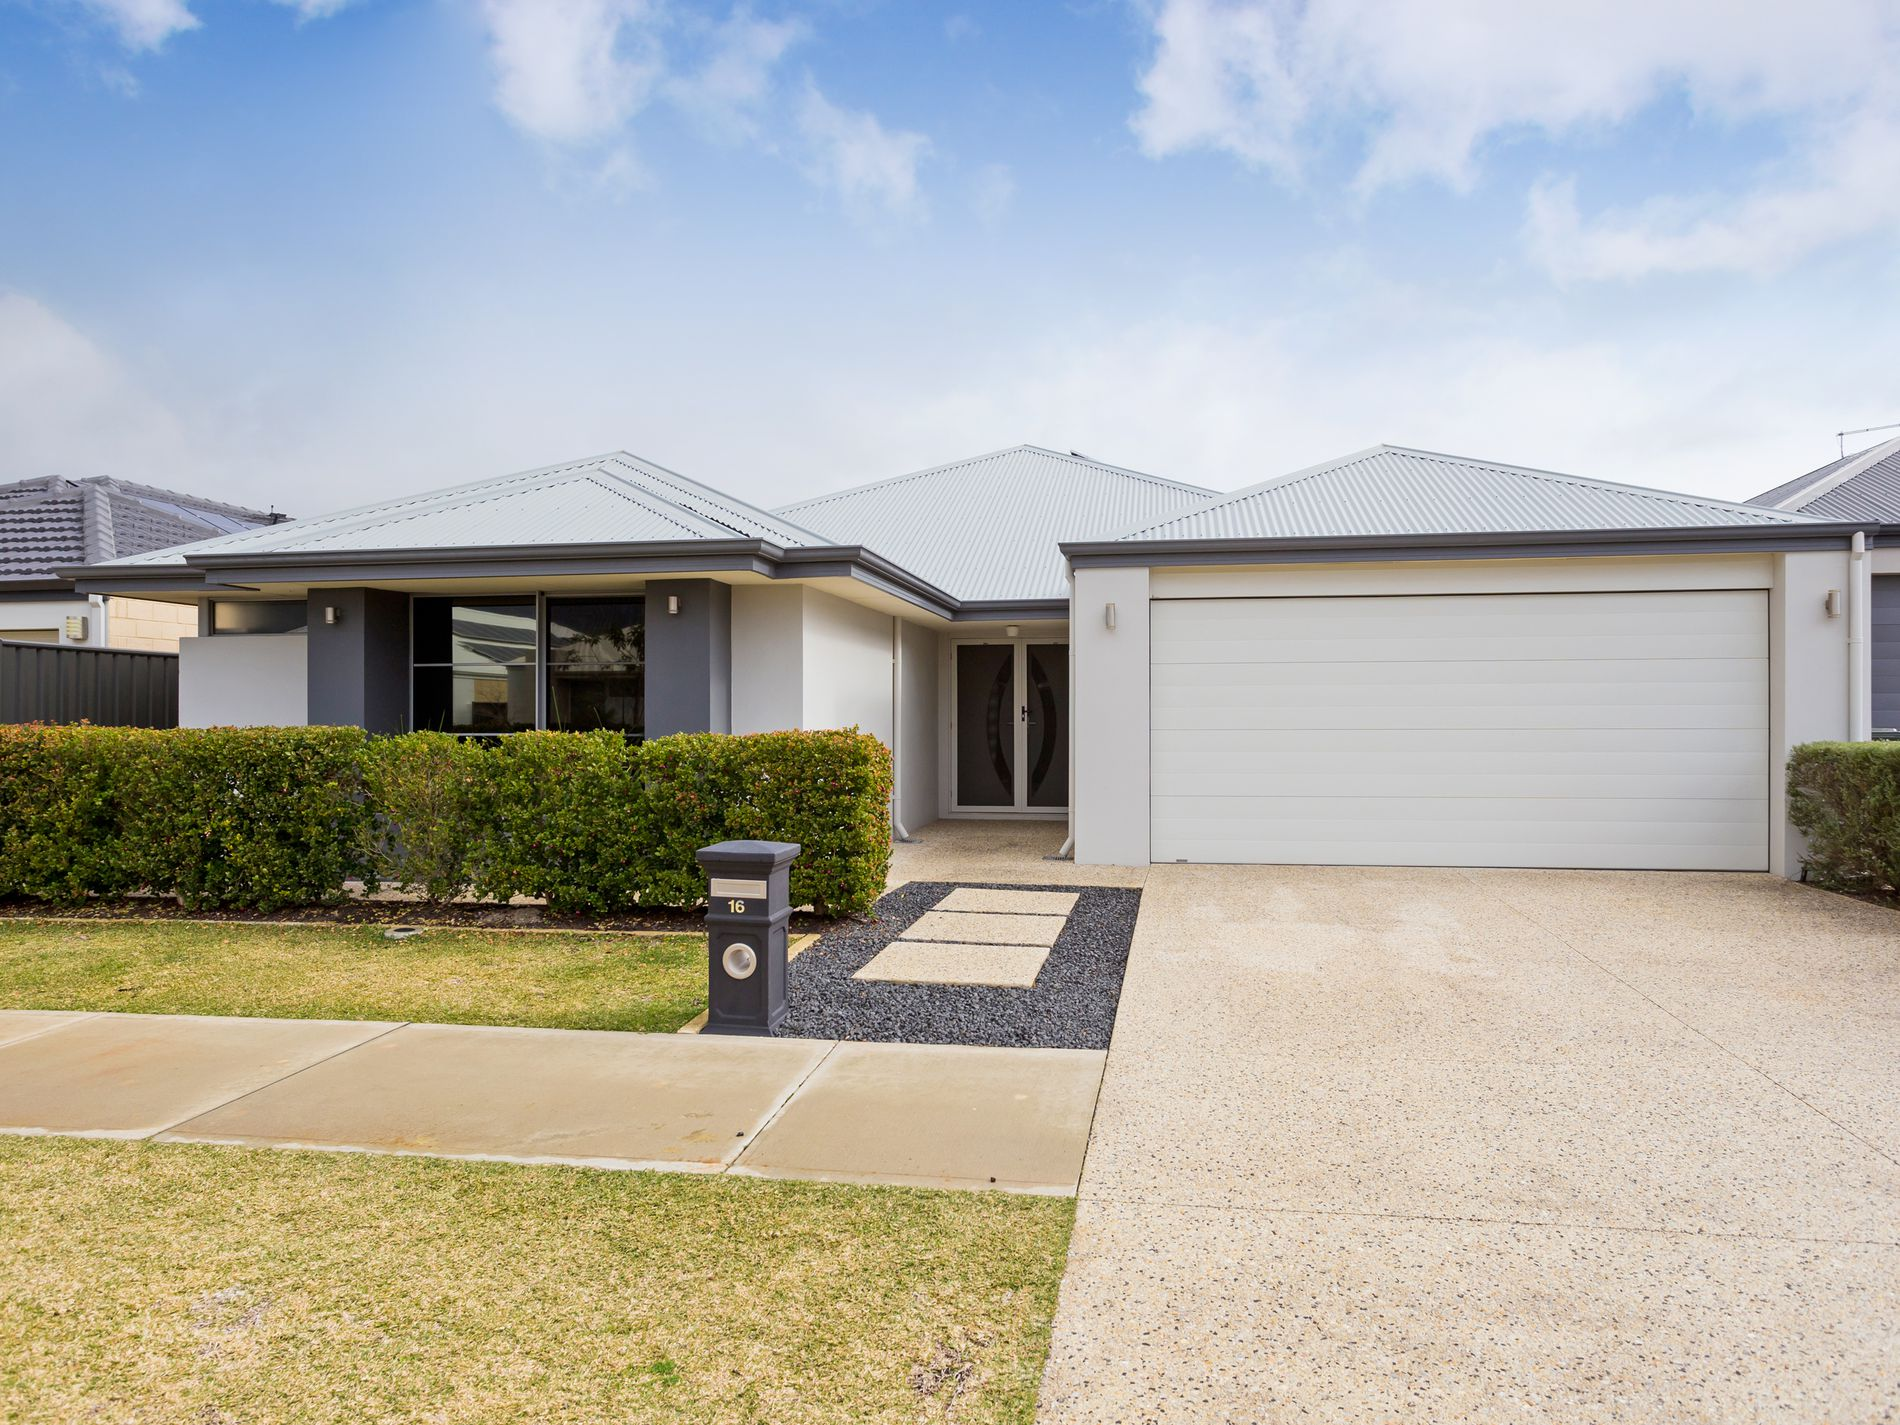 16 Flindell Way, Piara Waters